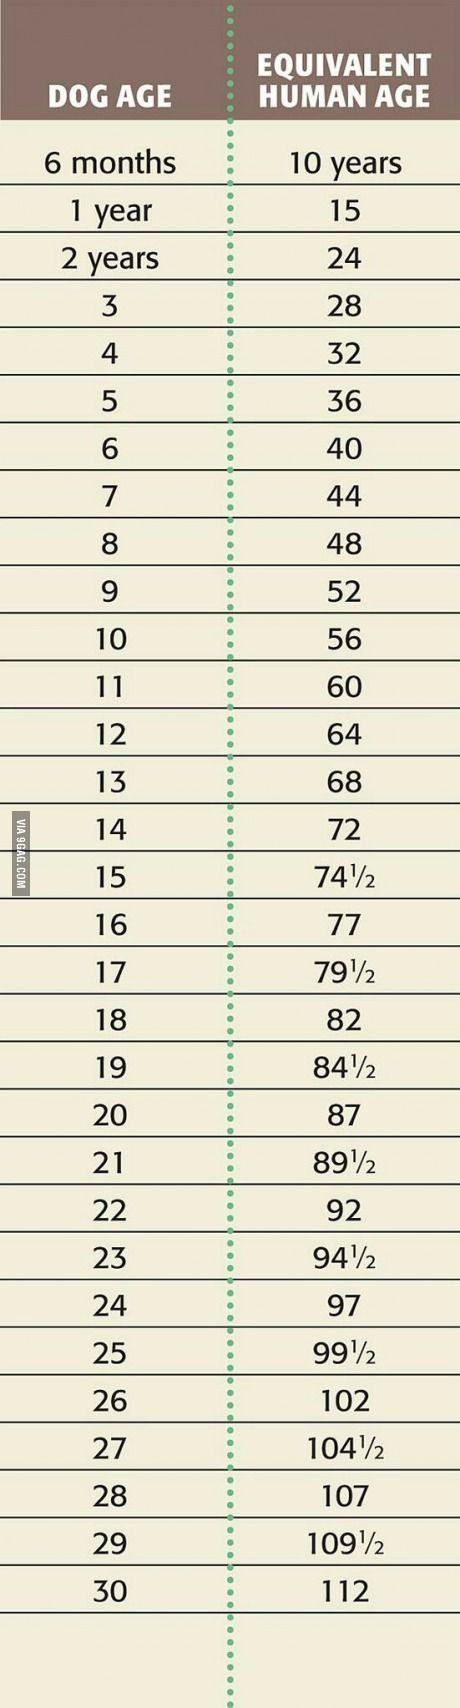 How old is your dog?